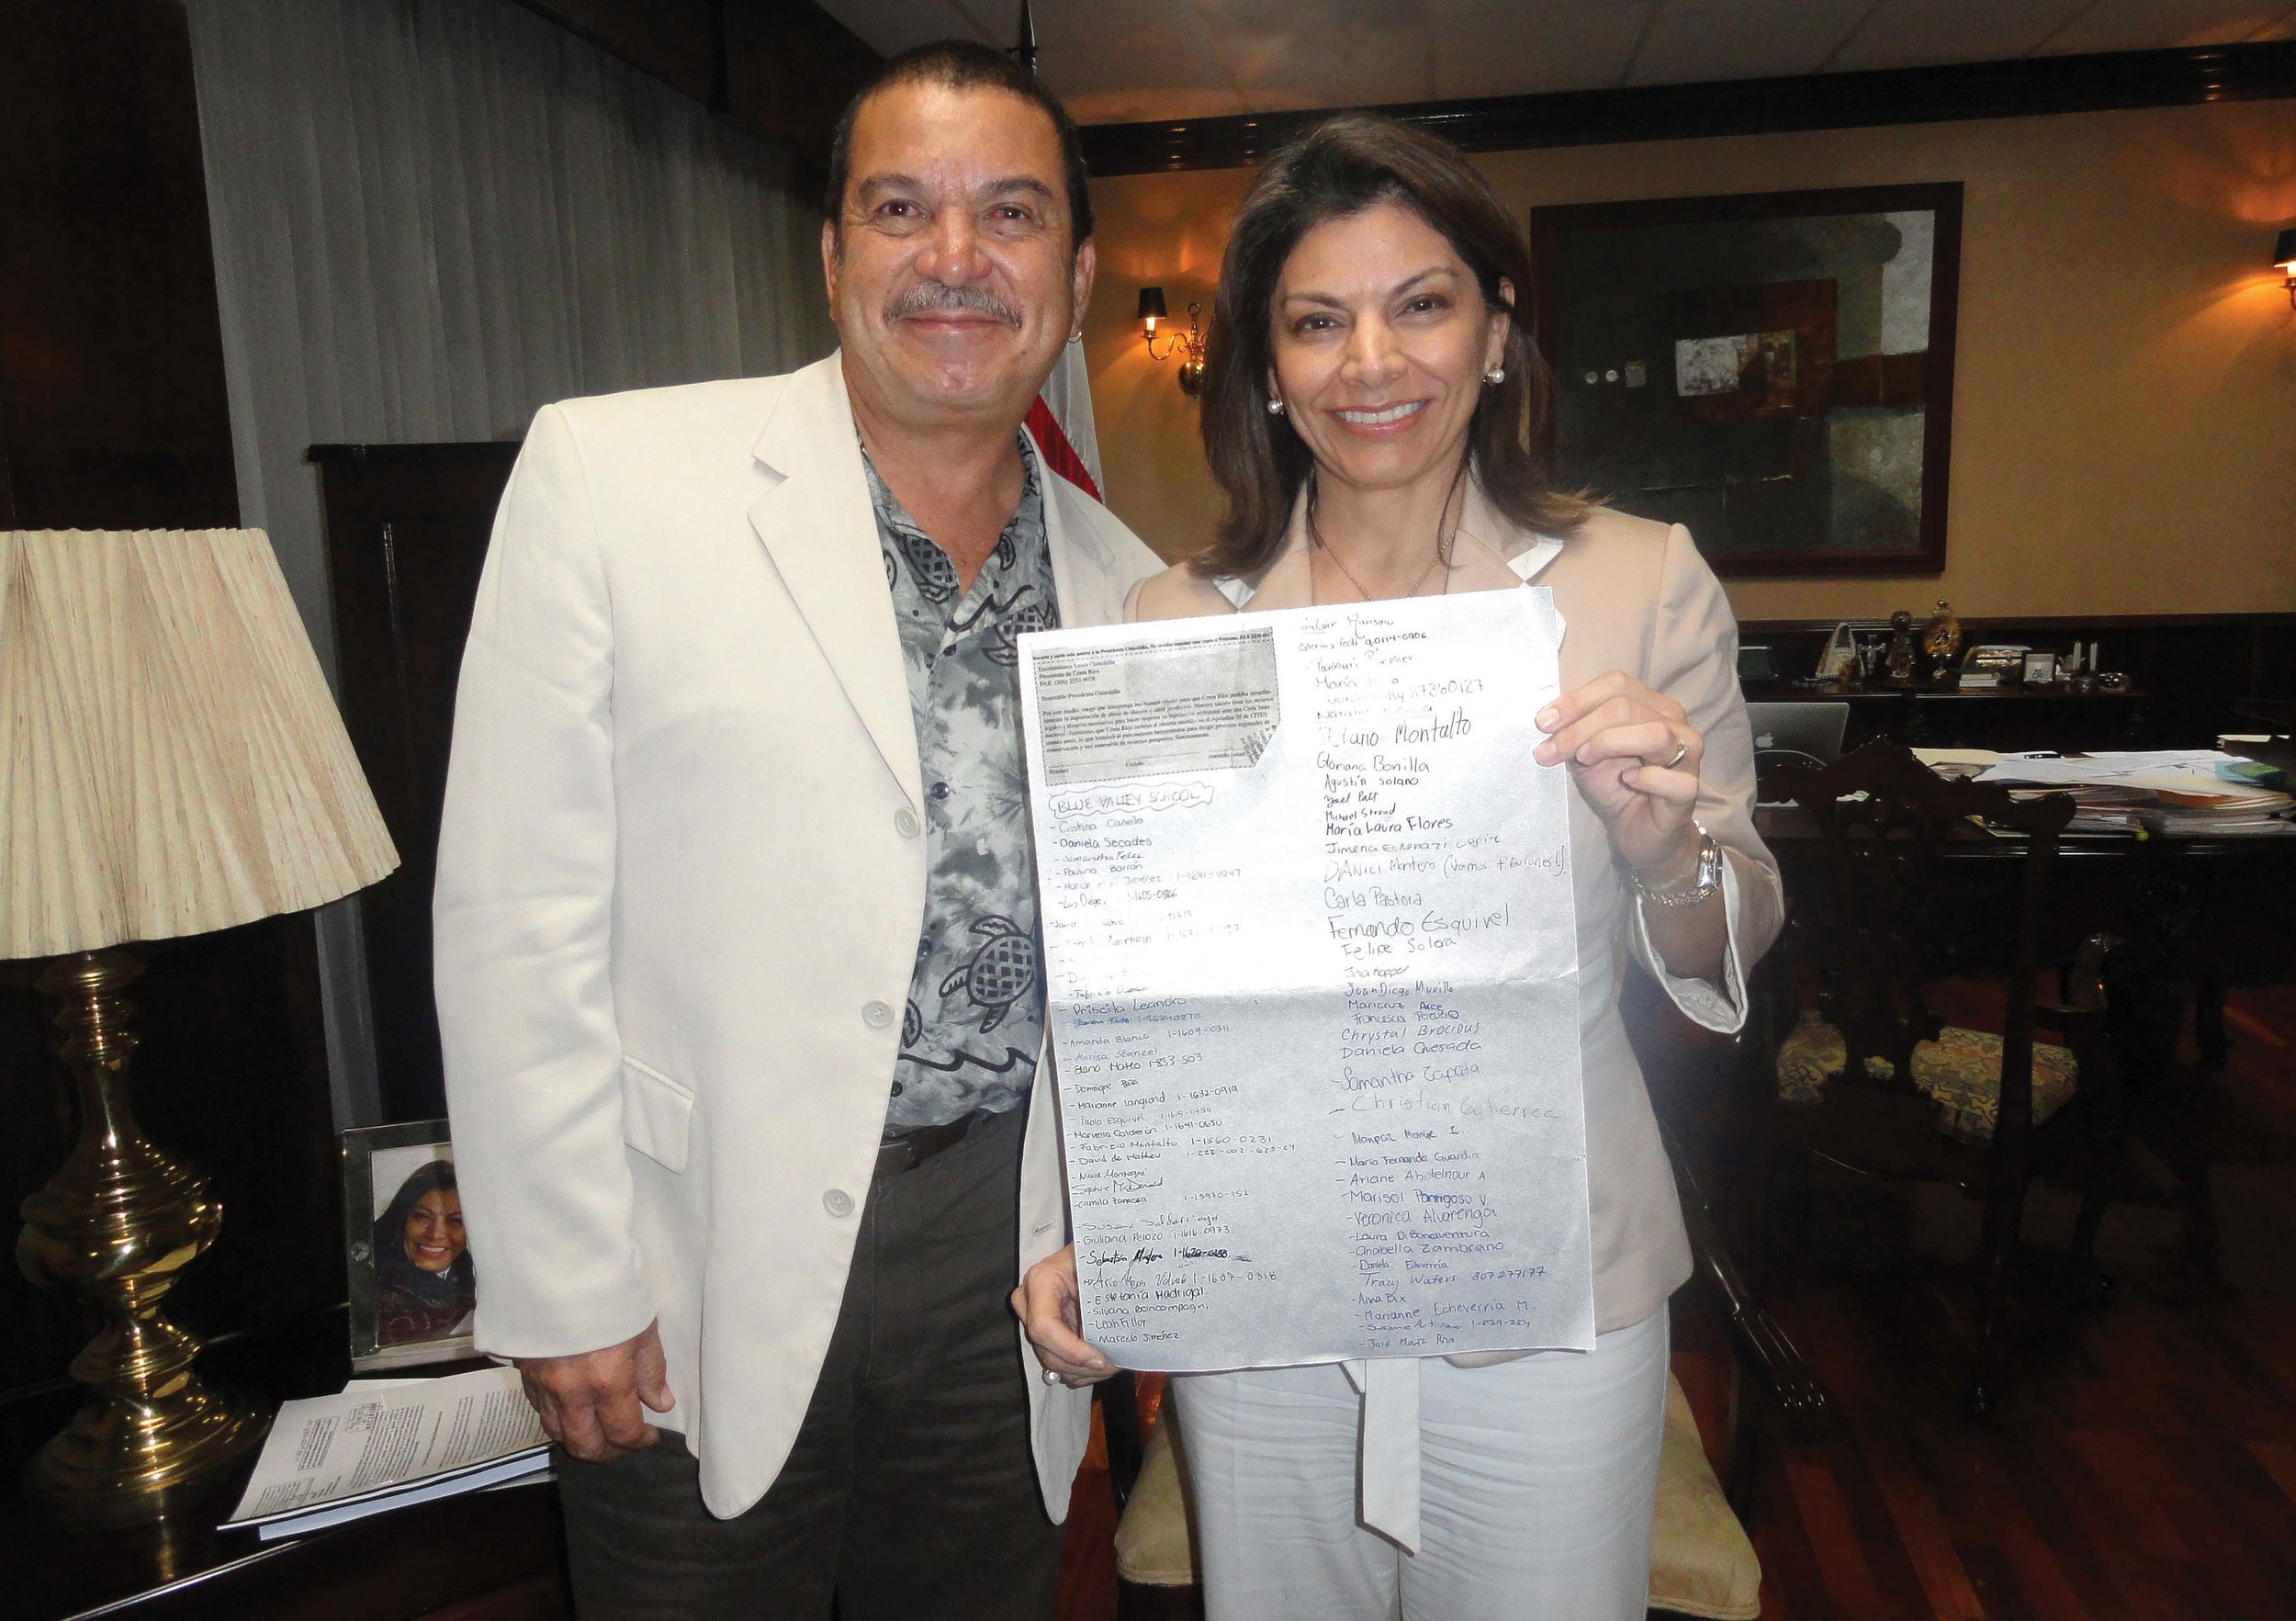 Randall Arauz (left), director of PRETOMA, and Costa Rican President Laura Chinchilla (right) with a petition signed by 100 students of Blue Valley School, Escazú, Costa Rica. The petition, which addresses the issue of shark finning, was organized by Chinchilla's teenage son in 2011. © PRETOMA